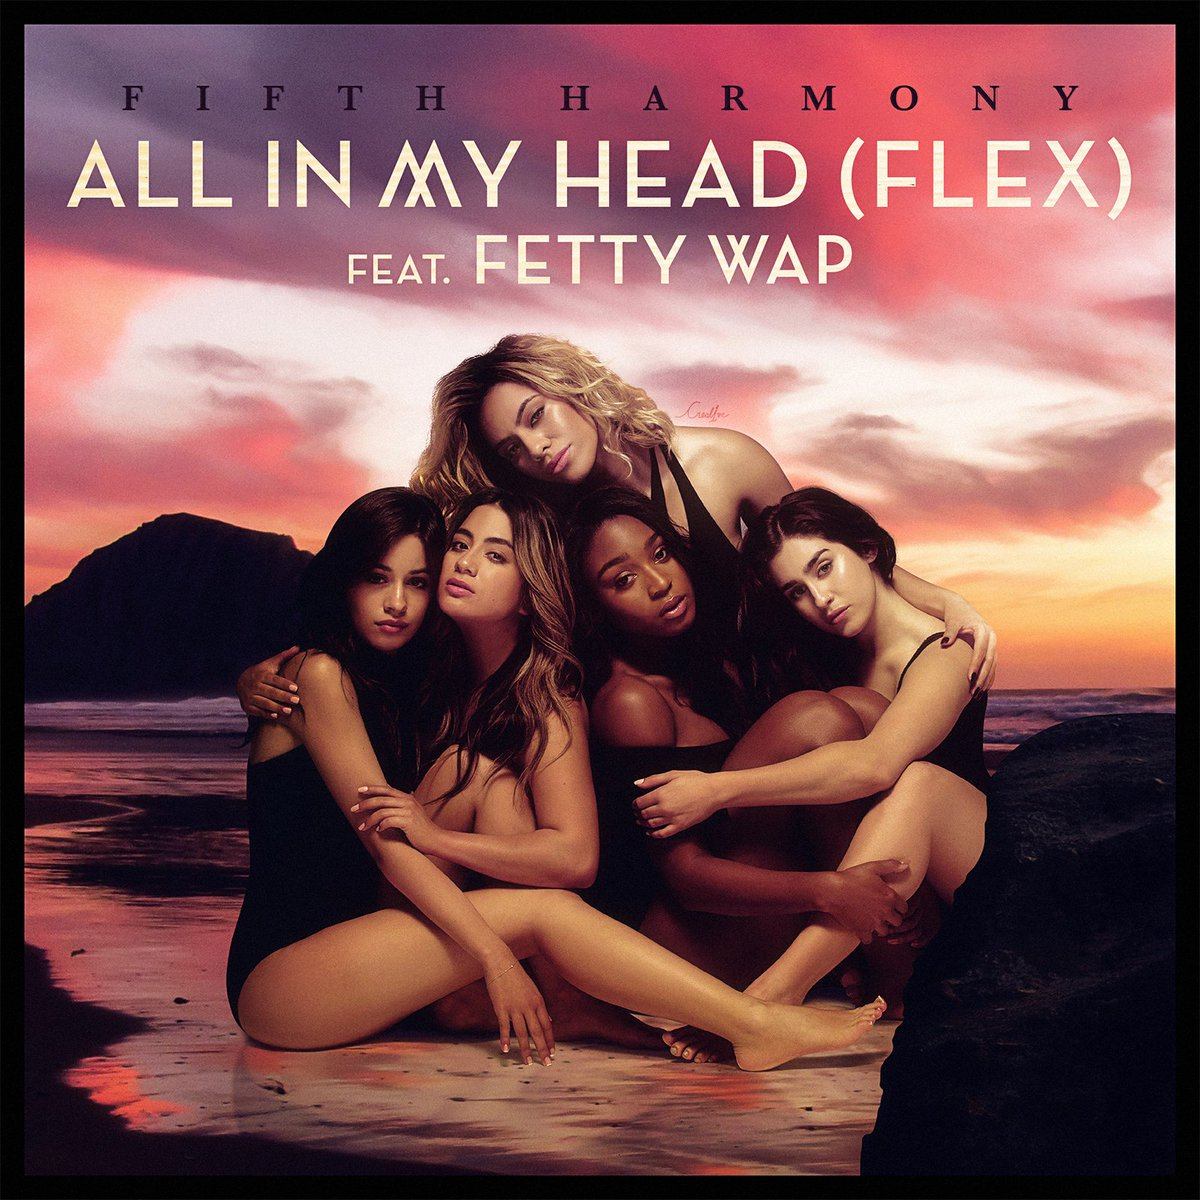 All In My Head (Flex) – Fifth Harmony ft. Fetty Wap